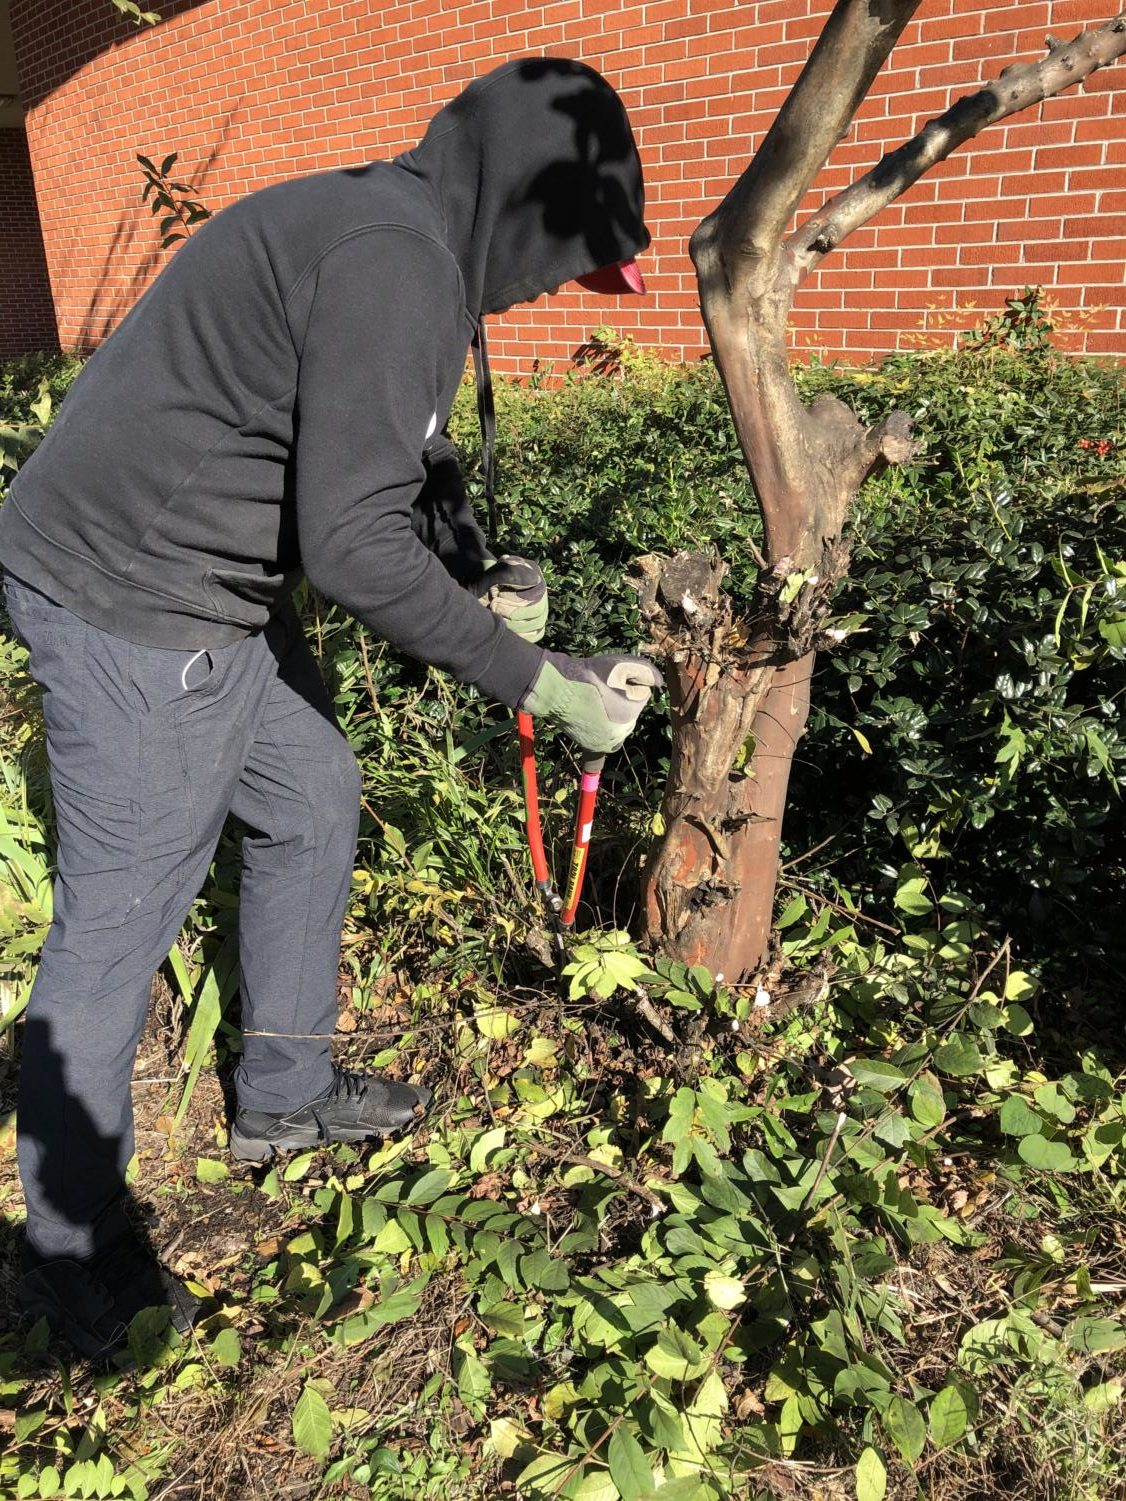 John Phebus (9) works hard to prune a tree. This will help improve the health of the plant.